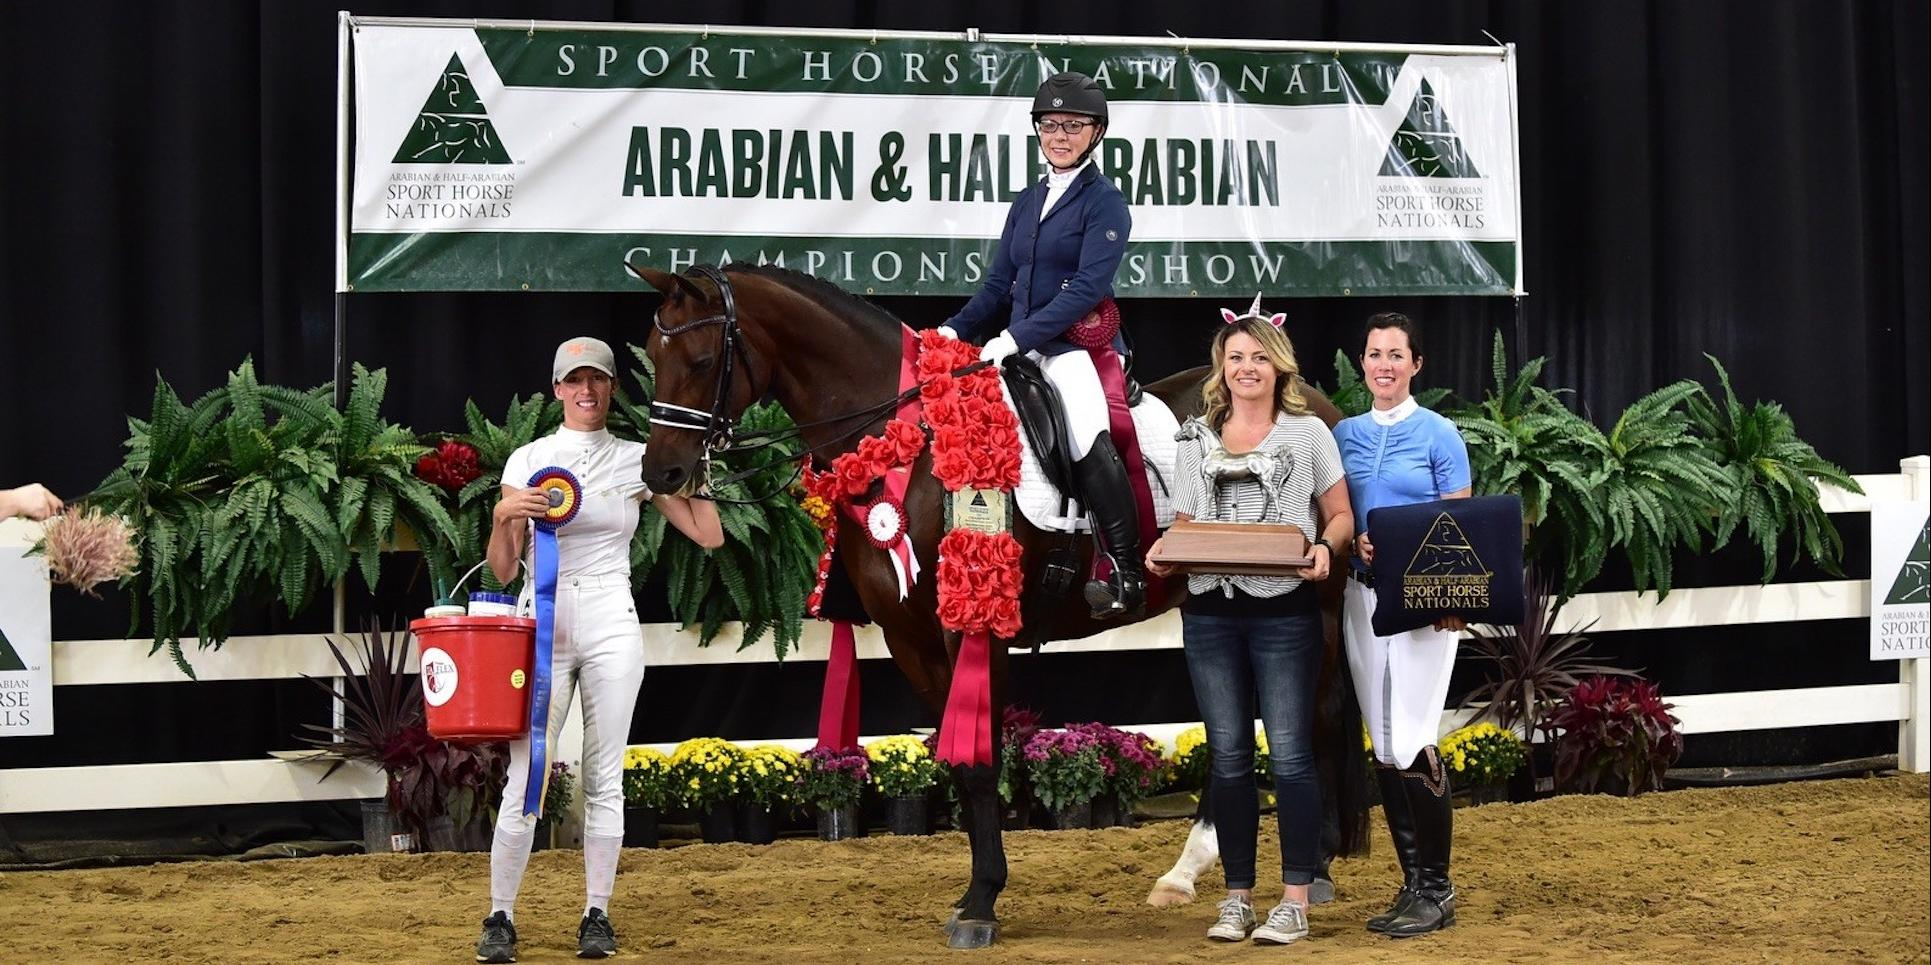 patricia_hough-us-quick_lady-vita_flex_victory_pass_award-arabian_sport_horse_nationals-2018.jpg